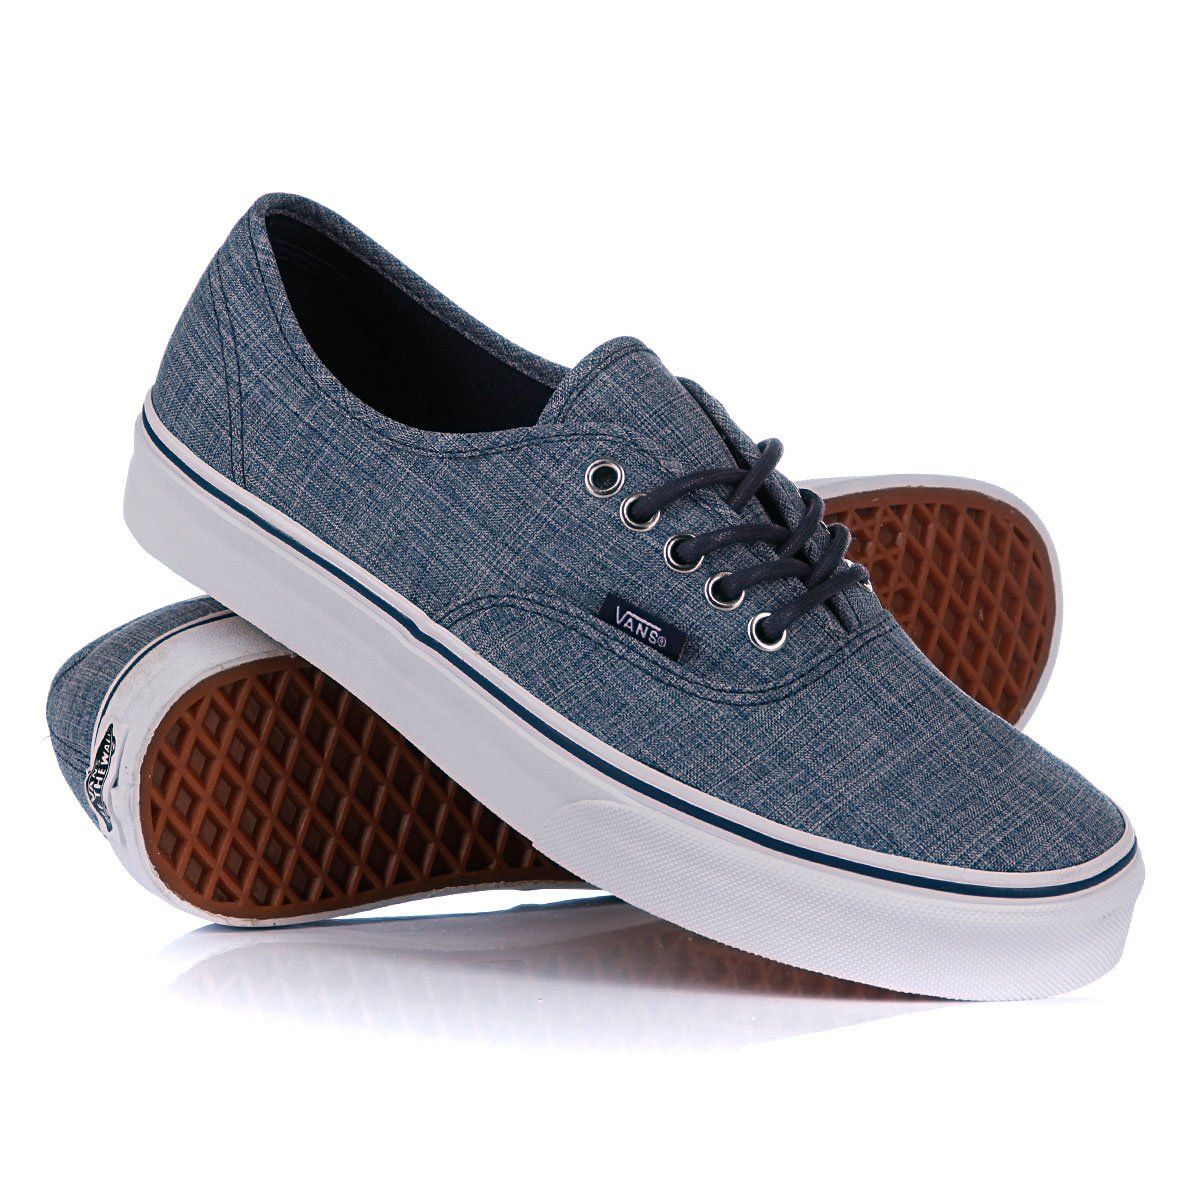 af651a4b93a71d Купить кеды Vans Authentic Grindle Dress Blues (150812vans05) в ...